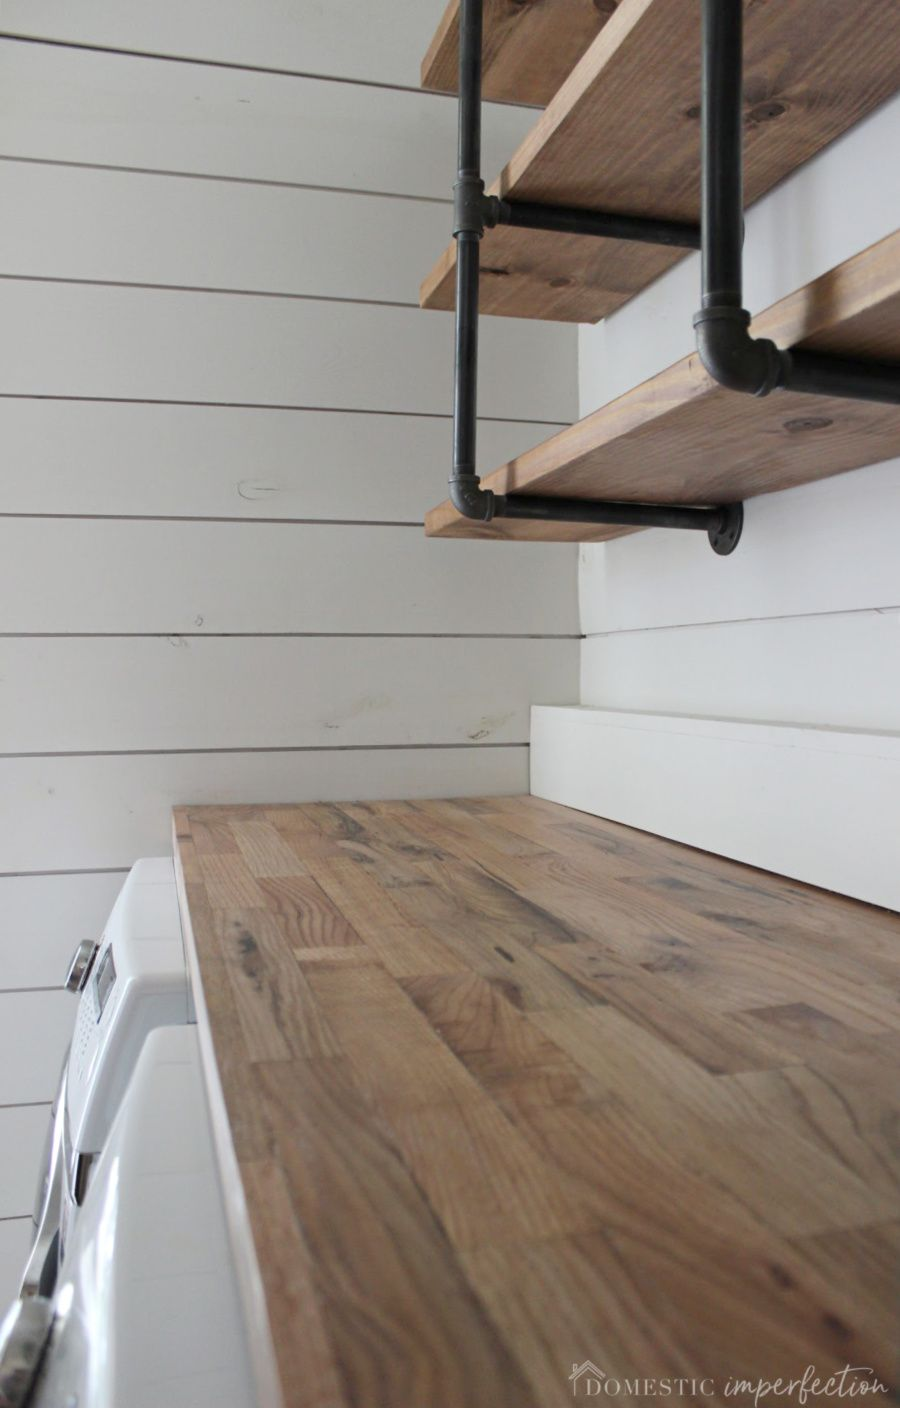 How To Make A Countertop Out Of Wood Flooring Diy Wood